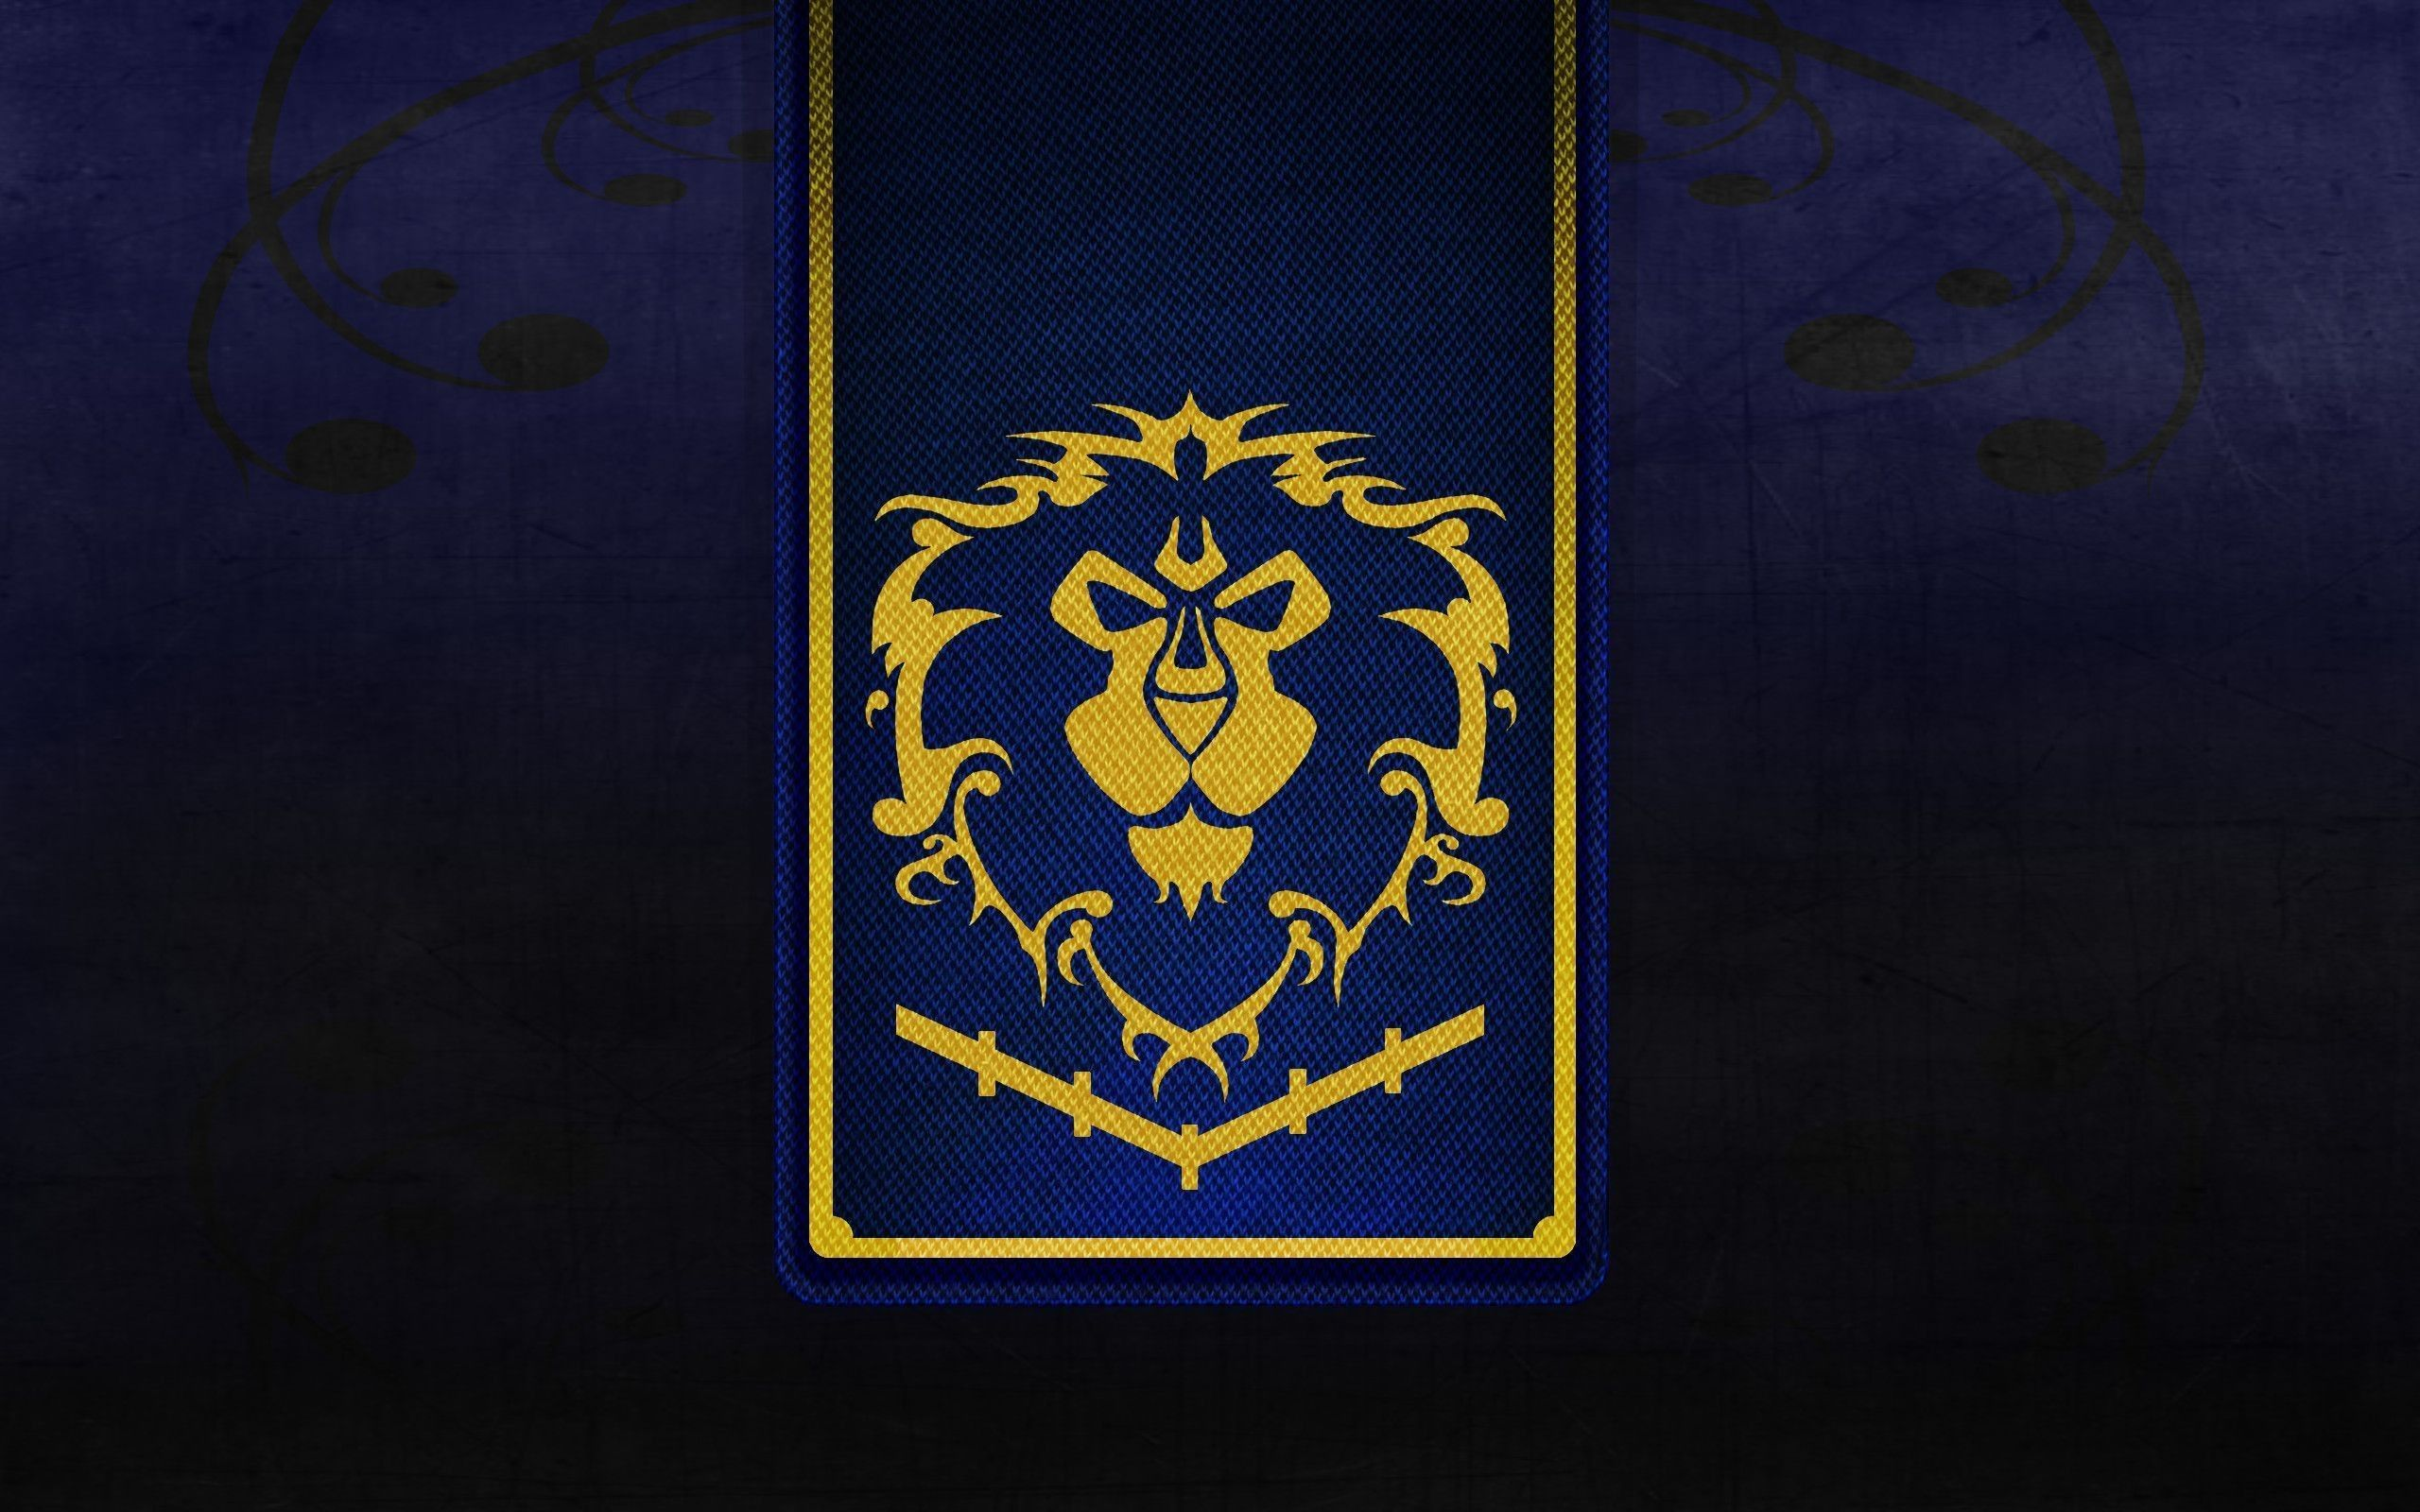 Wow Alliance Collection See All Wallpapers Wallpapers Background Games World Of Warcraft Wallpaper Logo Wallpaper Hd Traveler Wallpaper